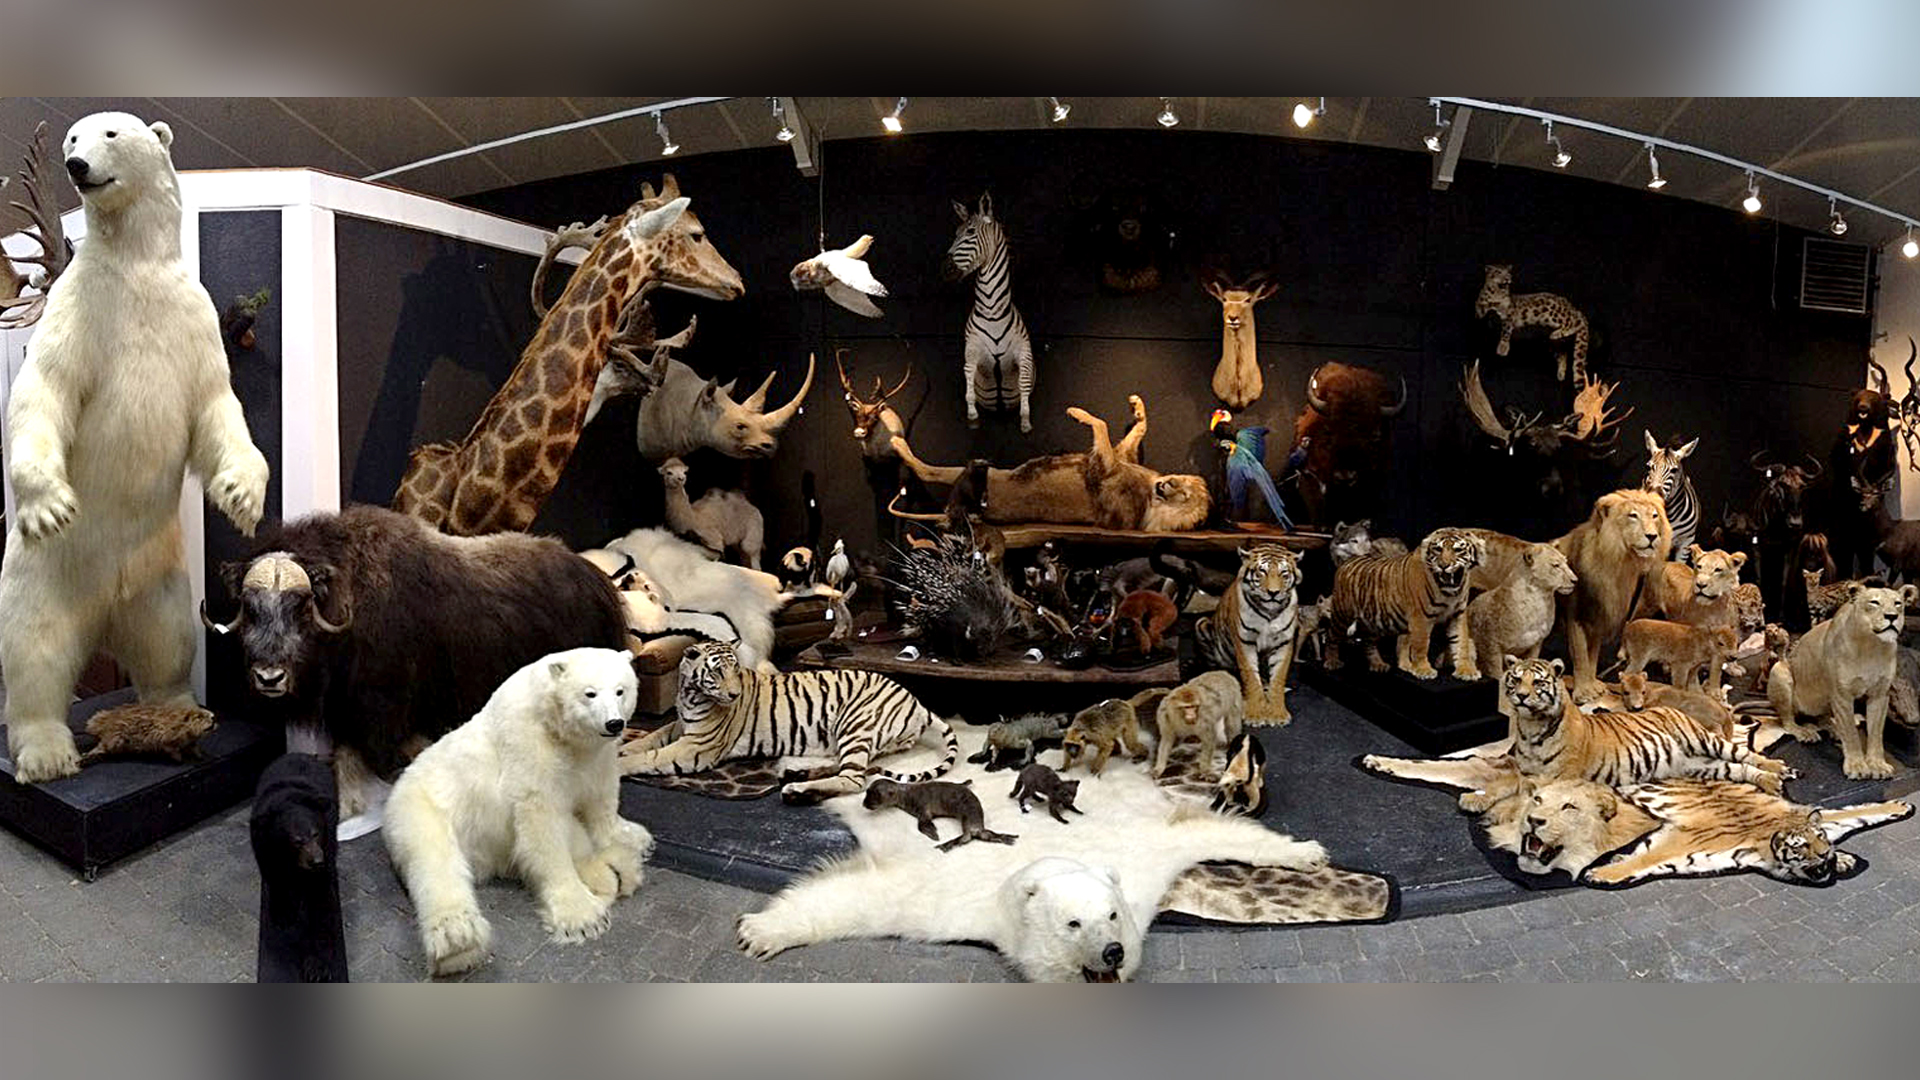 VIDEO: Fur Pity's Sake: Thief Stole Hundreds Of Animal Skins From Taxidermy Studio